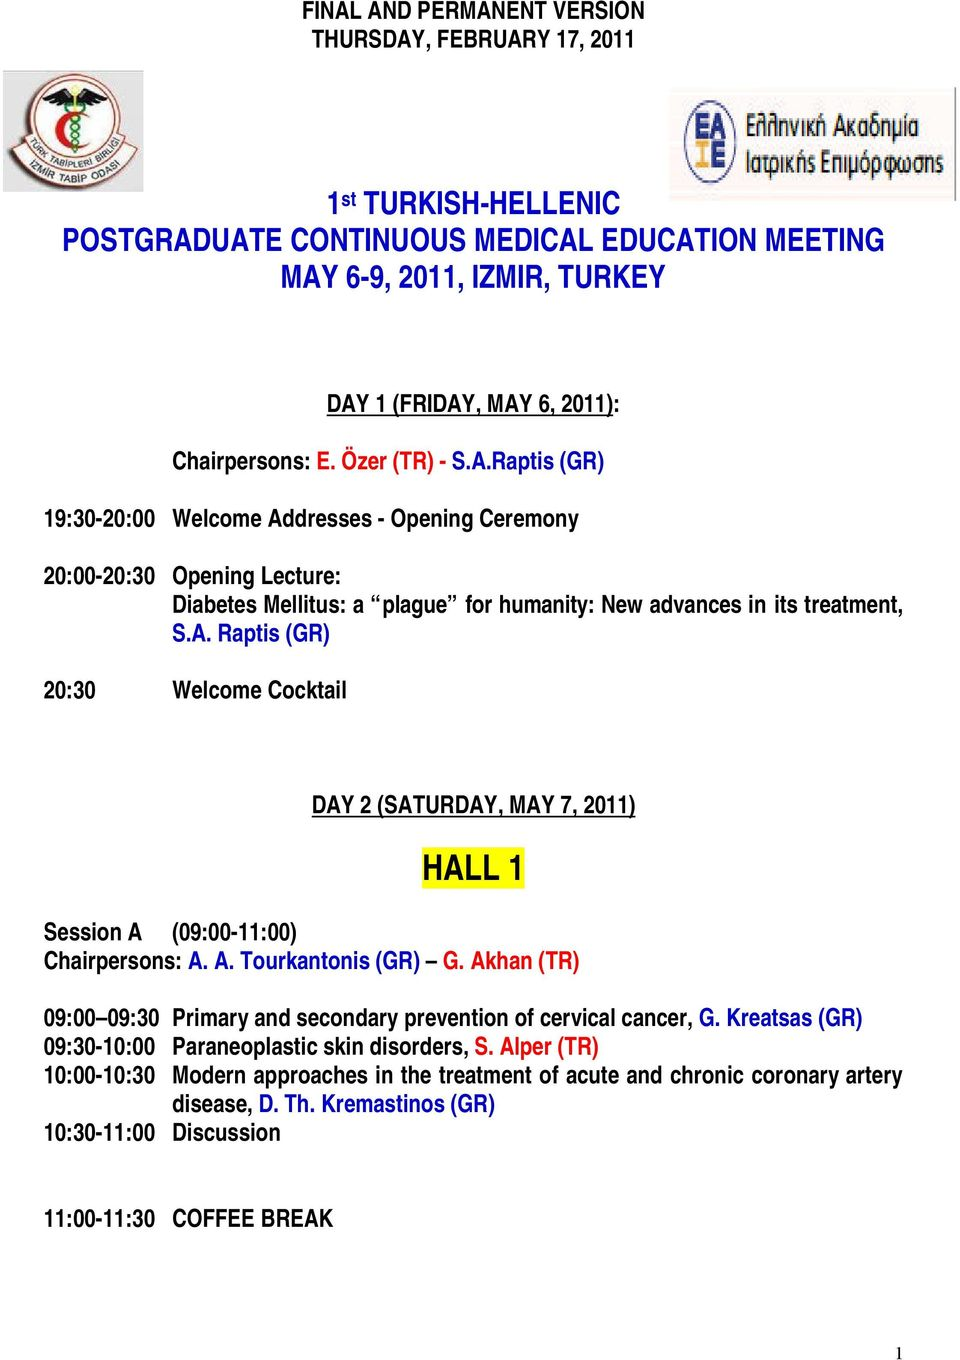 A. Tourkantonis (GR) G. Akhan (TR) 09:00 09:30 Primary and secondary prevention of cervical cancer, G. Kreatsas (GR) 09:30-10:00 Paraneoplastic skin disorders, S.